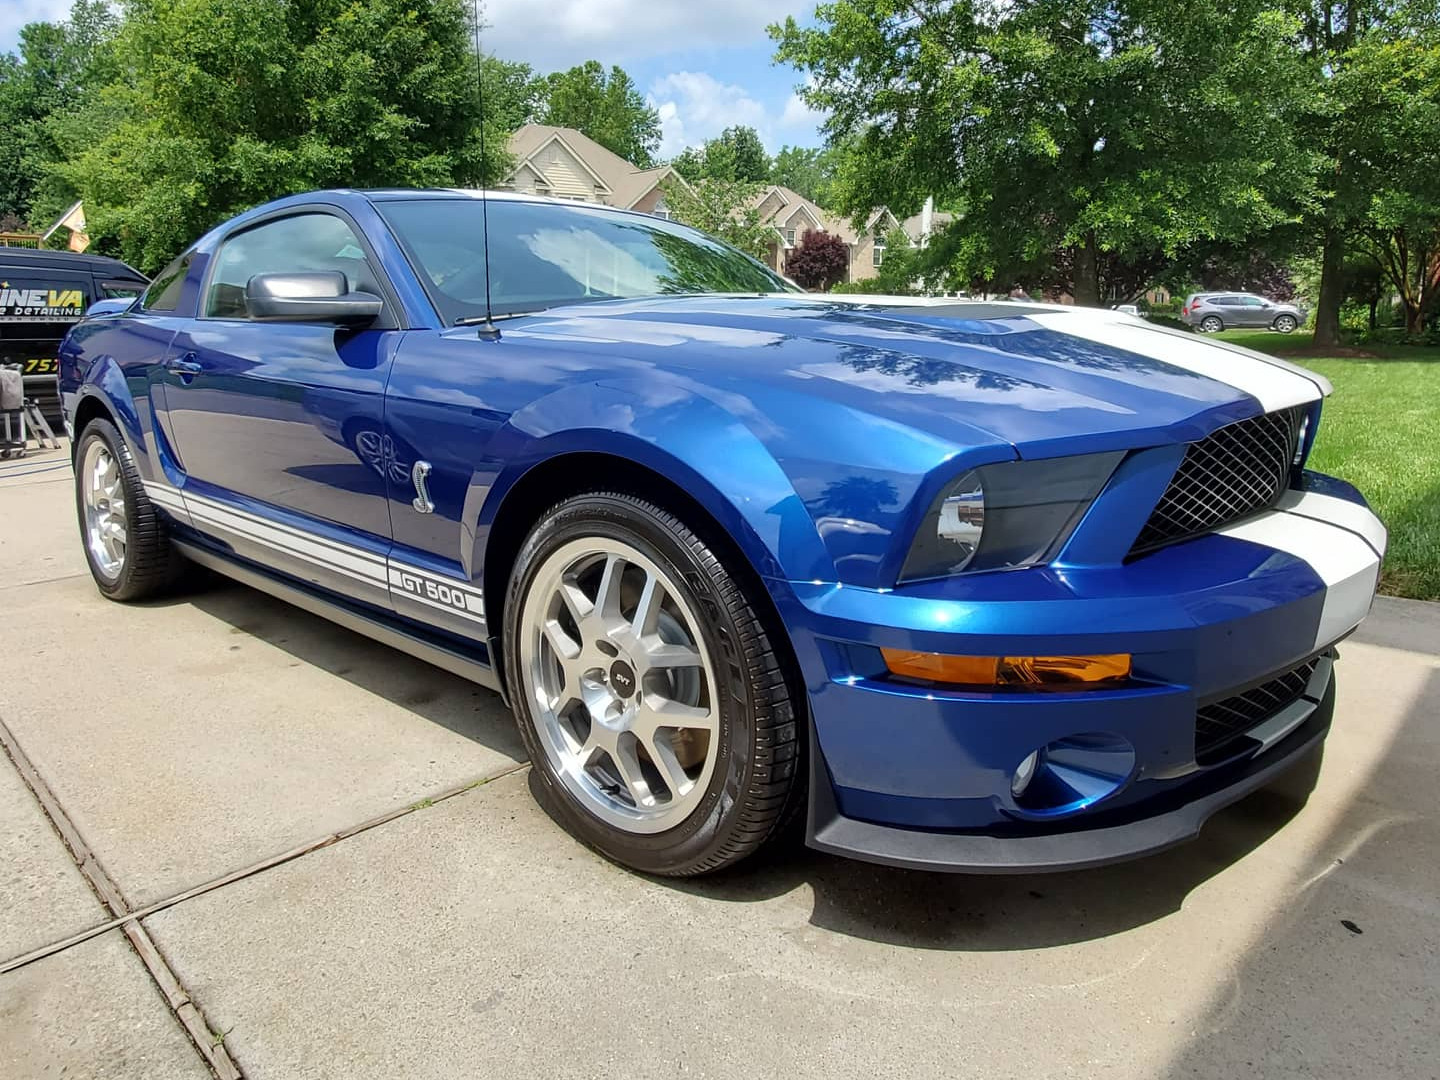 Ford Shelby GT500 Mustang detail